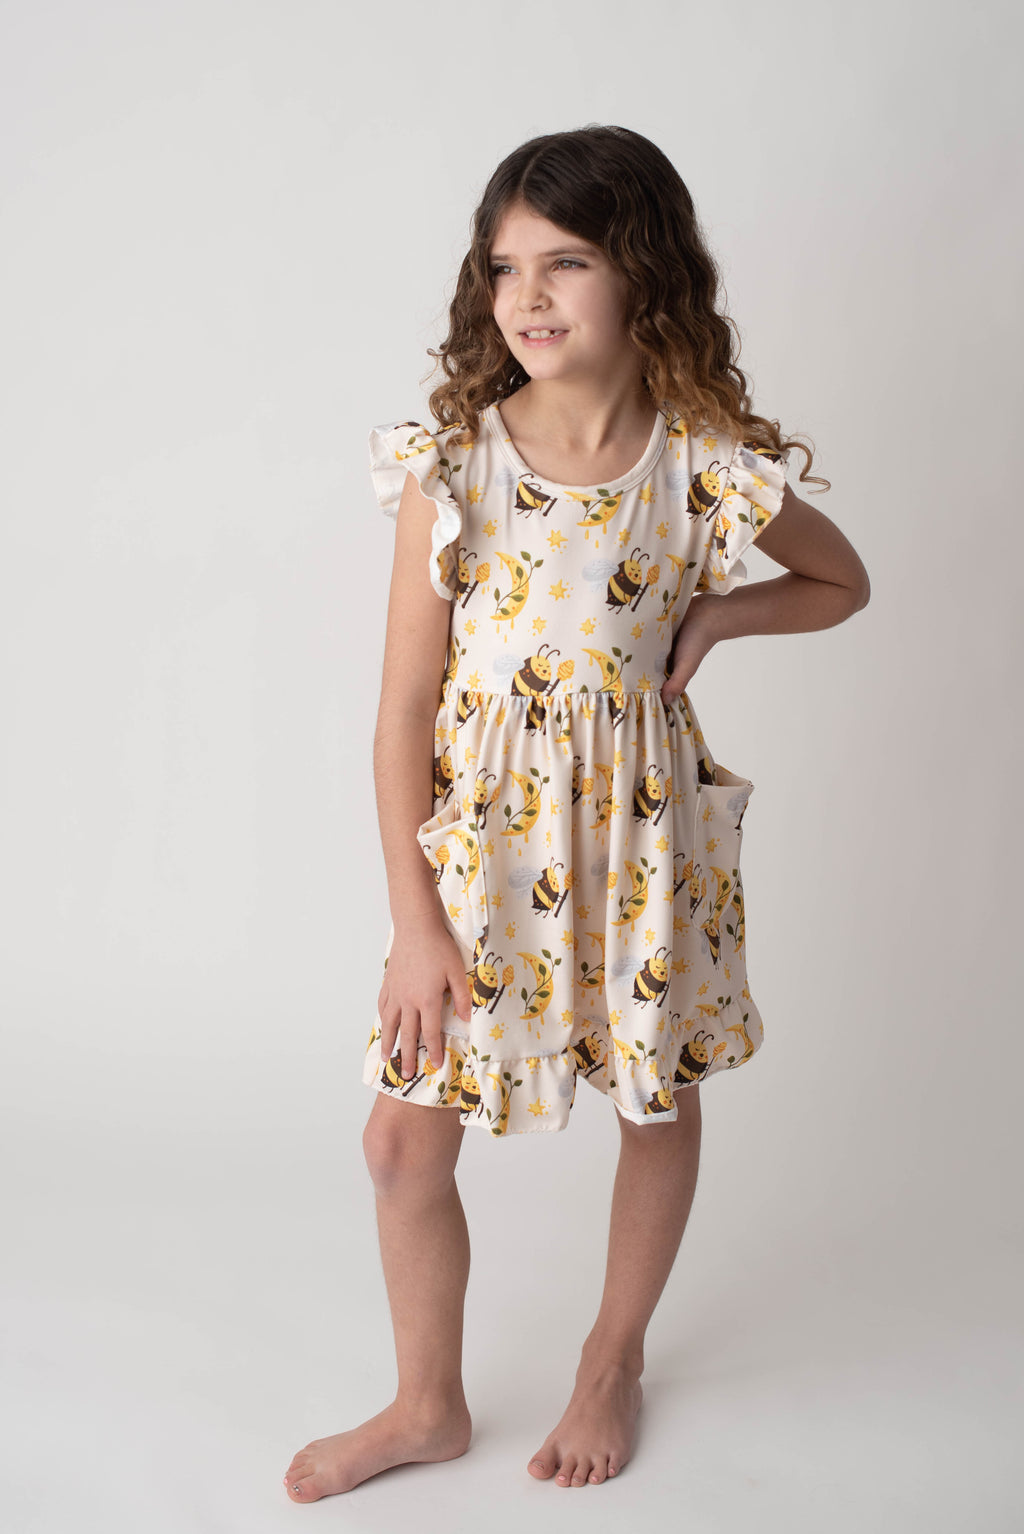 HONEY BEE TWIRL DRESS WITH POCKETS